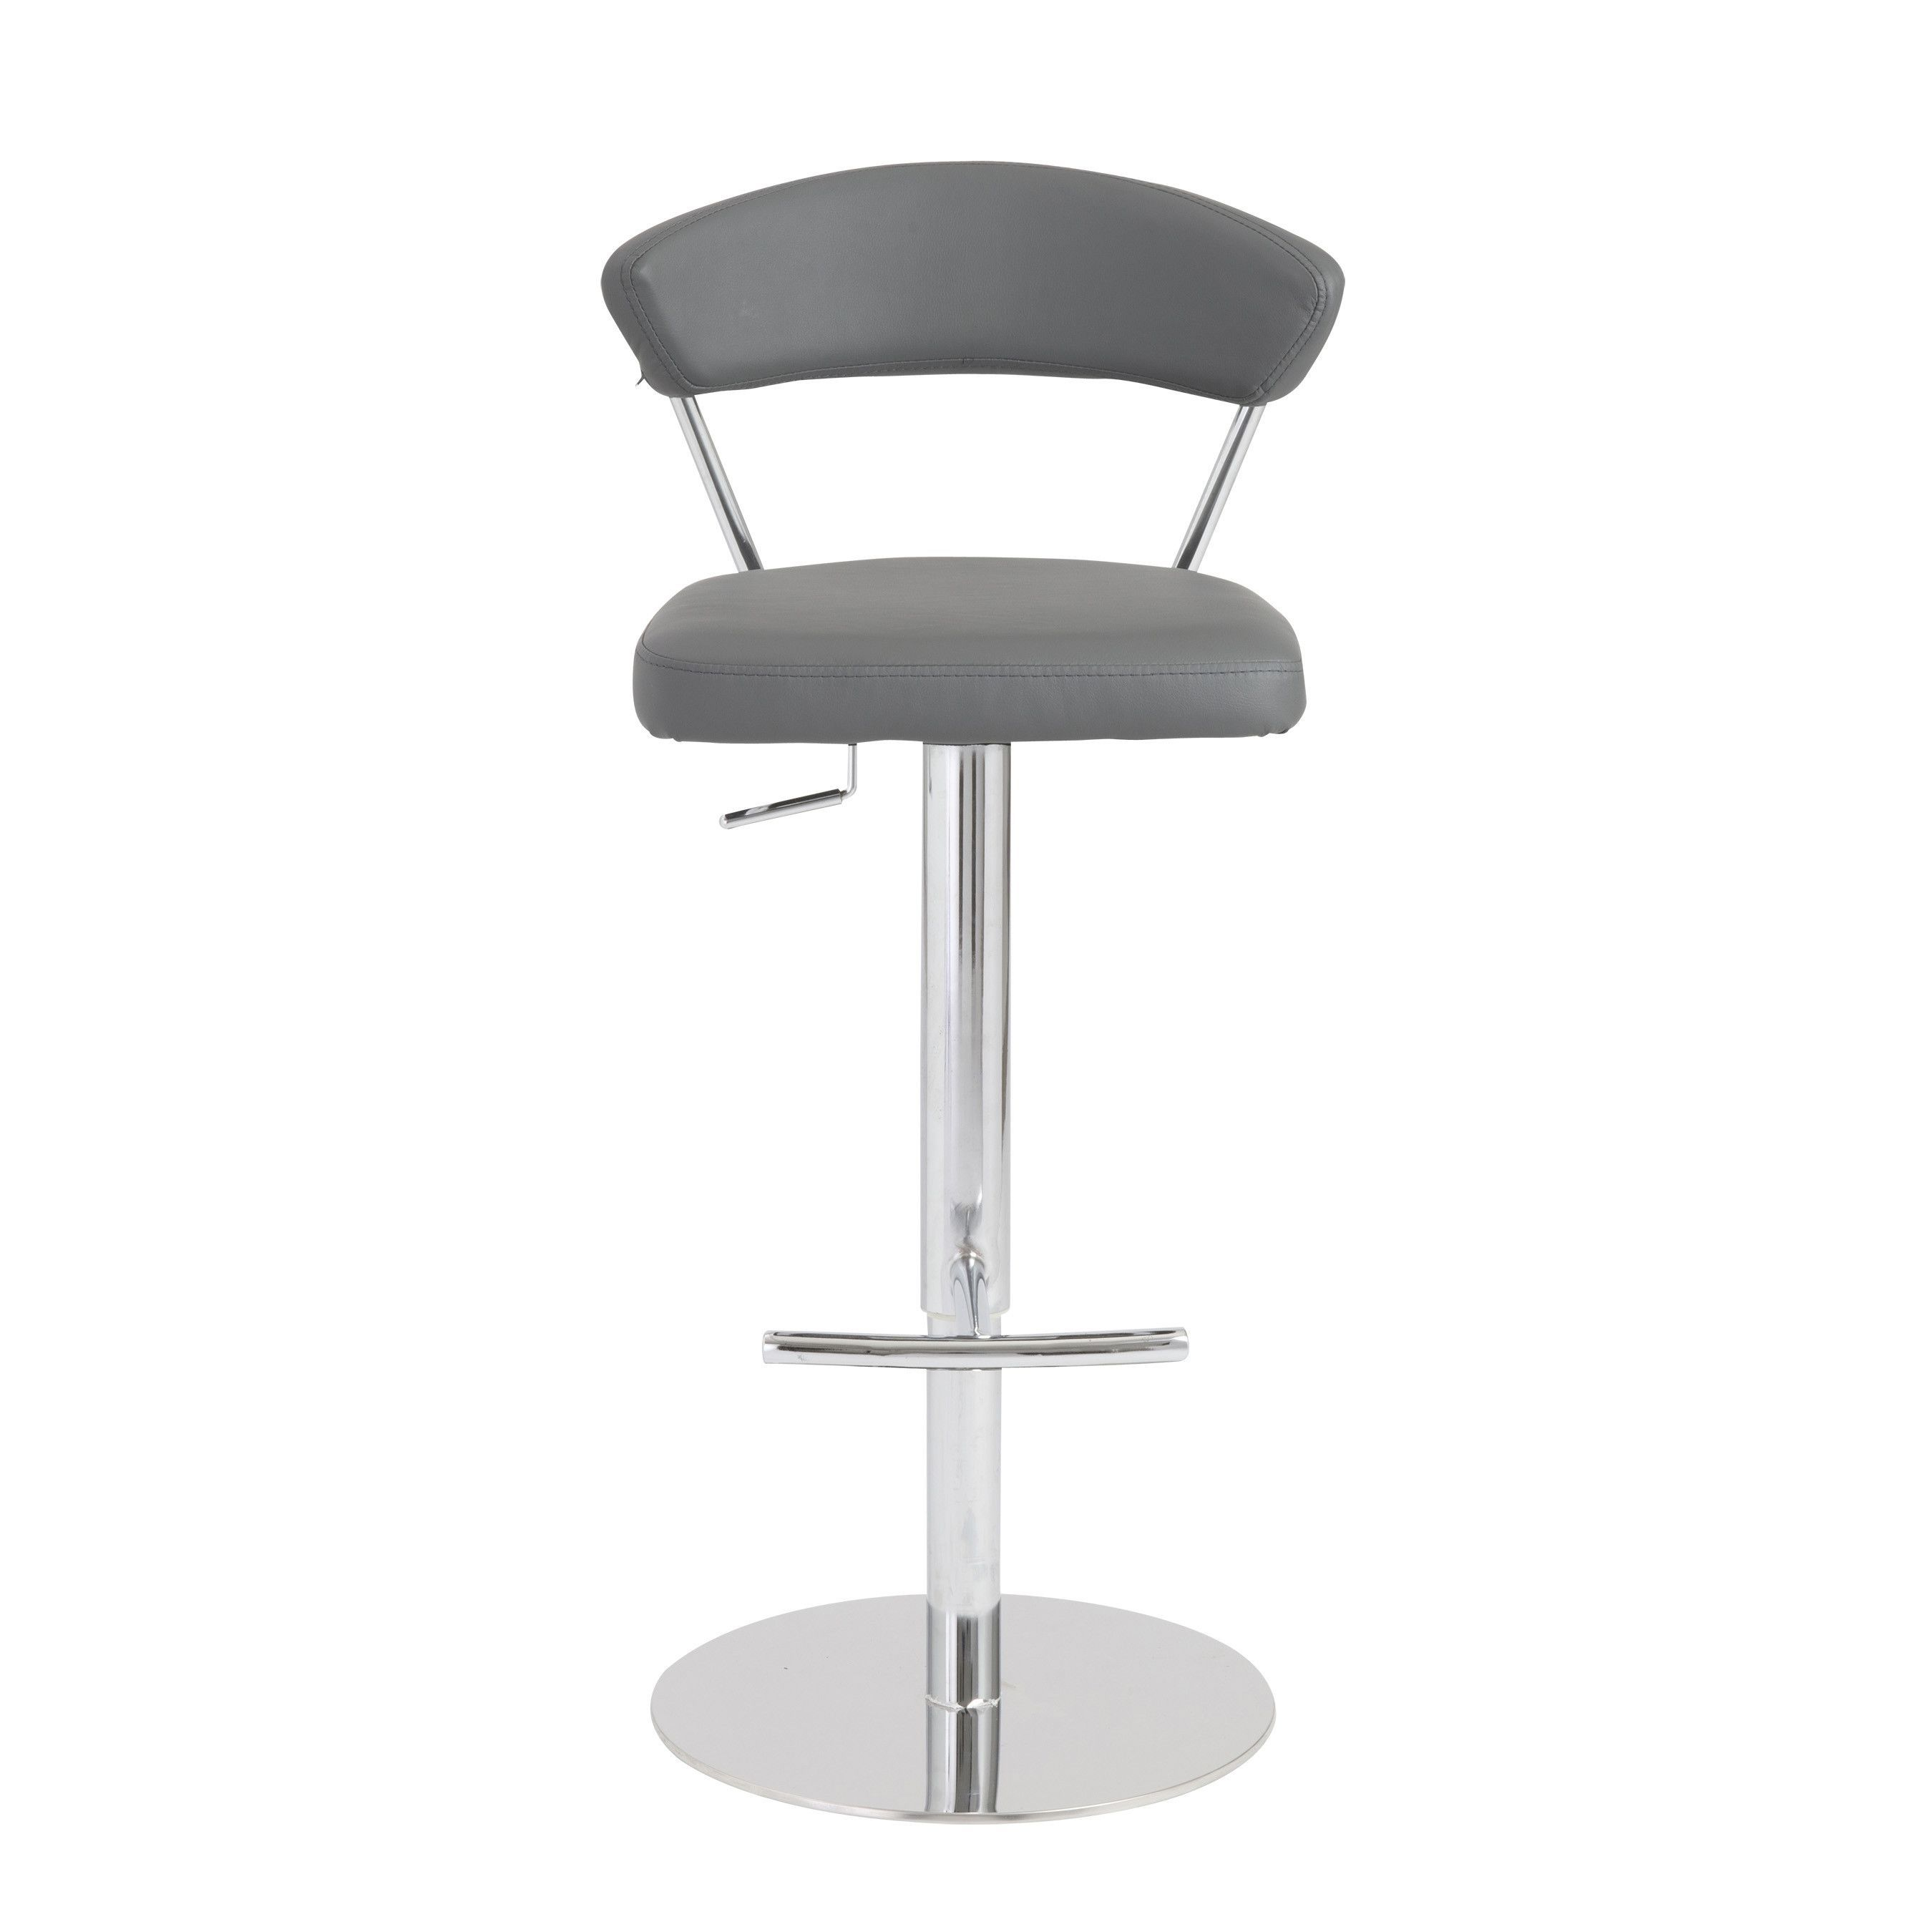 Best Of Chrome and Wood Bar Stools